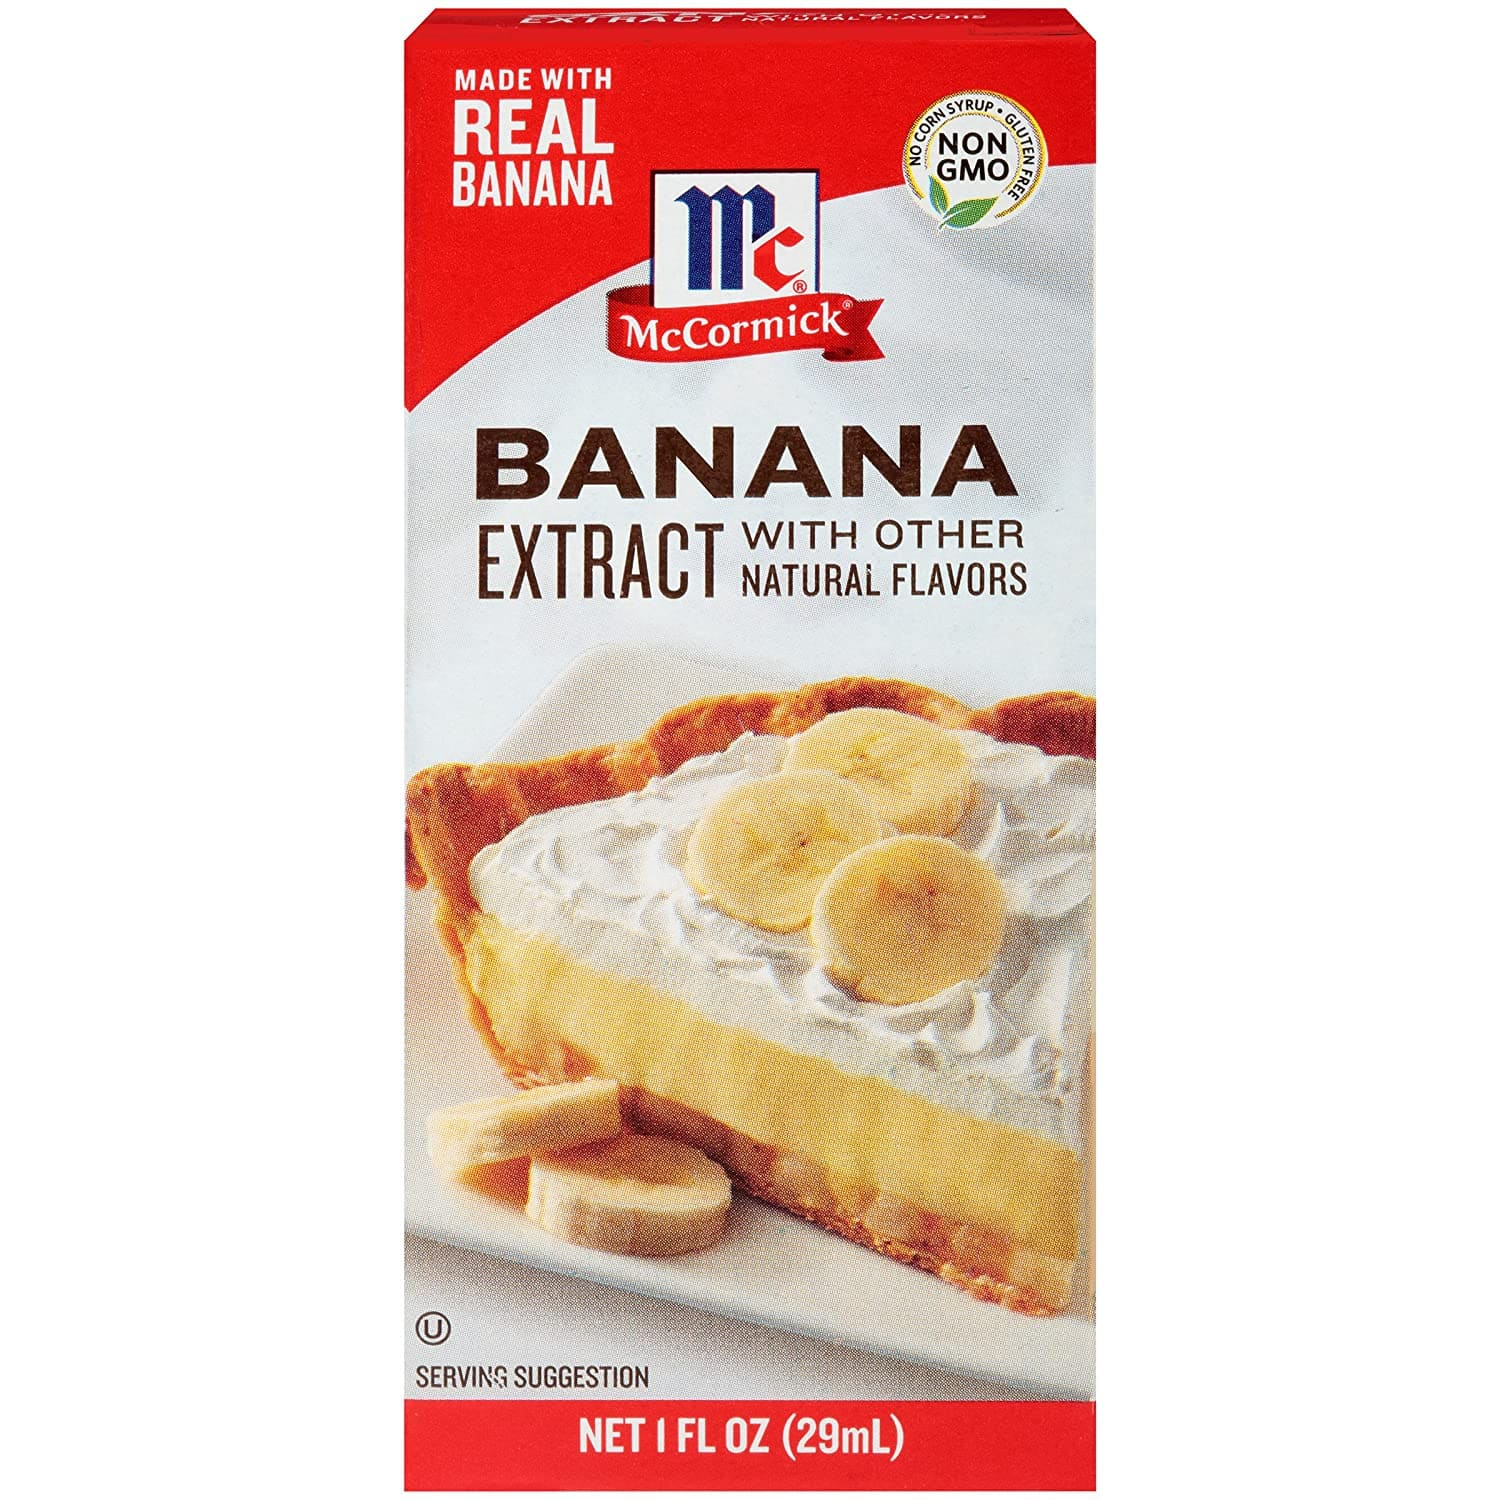 McCormick Banana Extract With Other Natural Flavors, 1 Fl Oz [Banana] as low as 1.95 $2.29